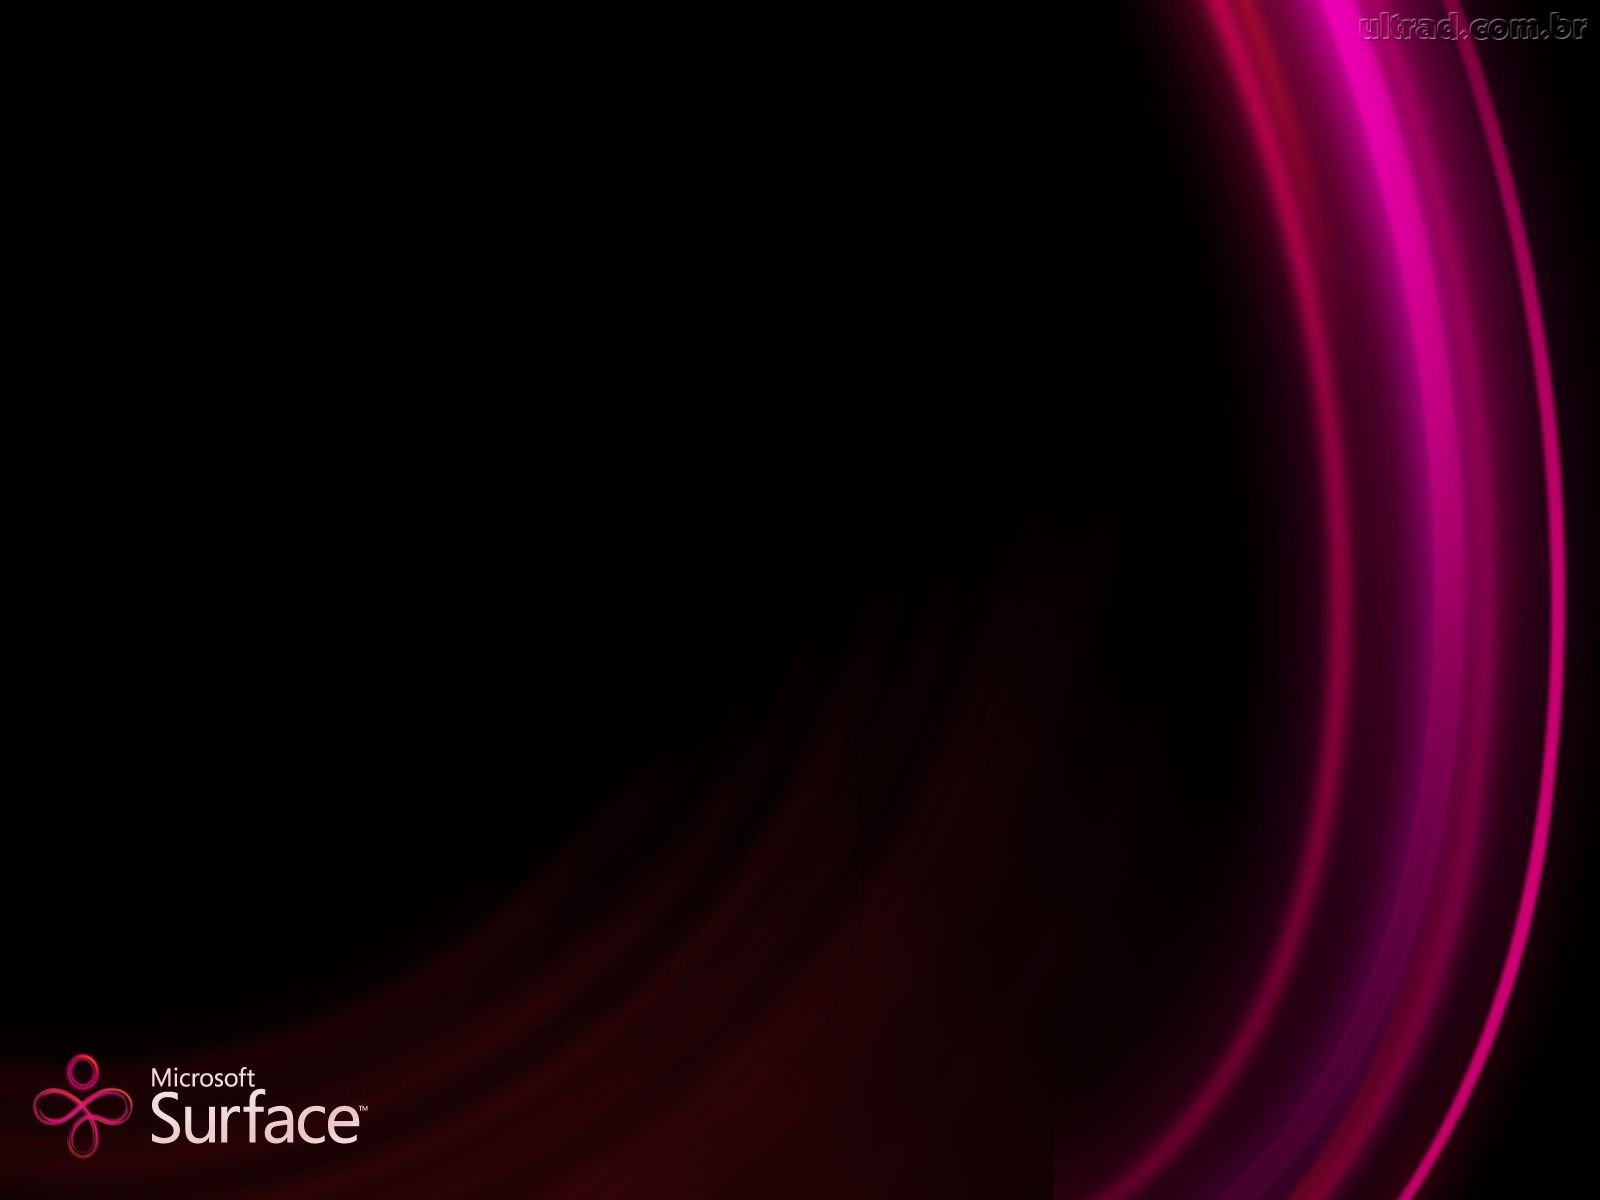 Microsoft Surface 3 Wallpaper